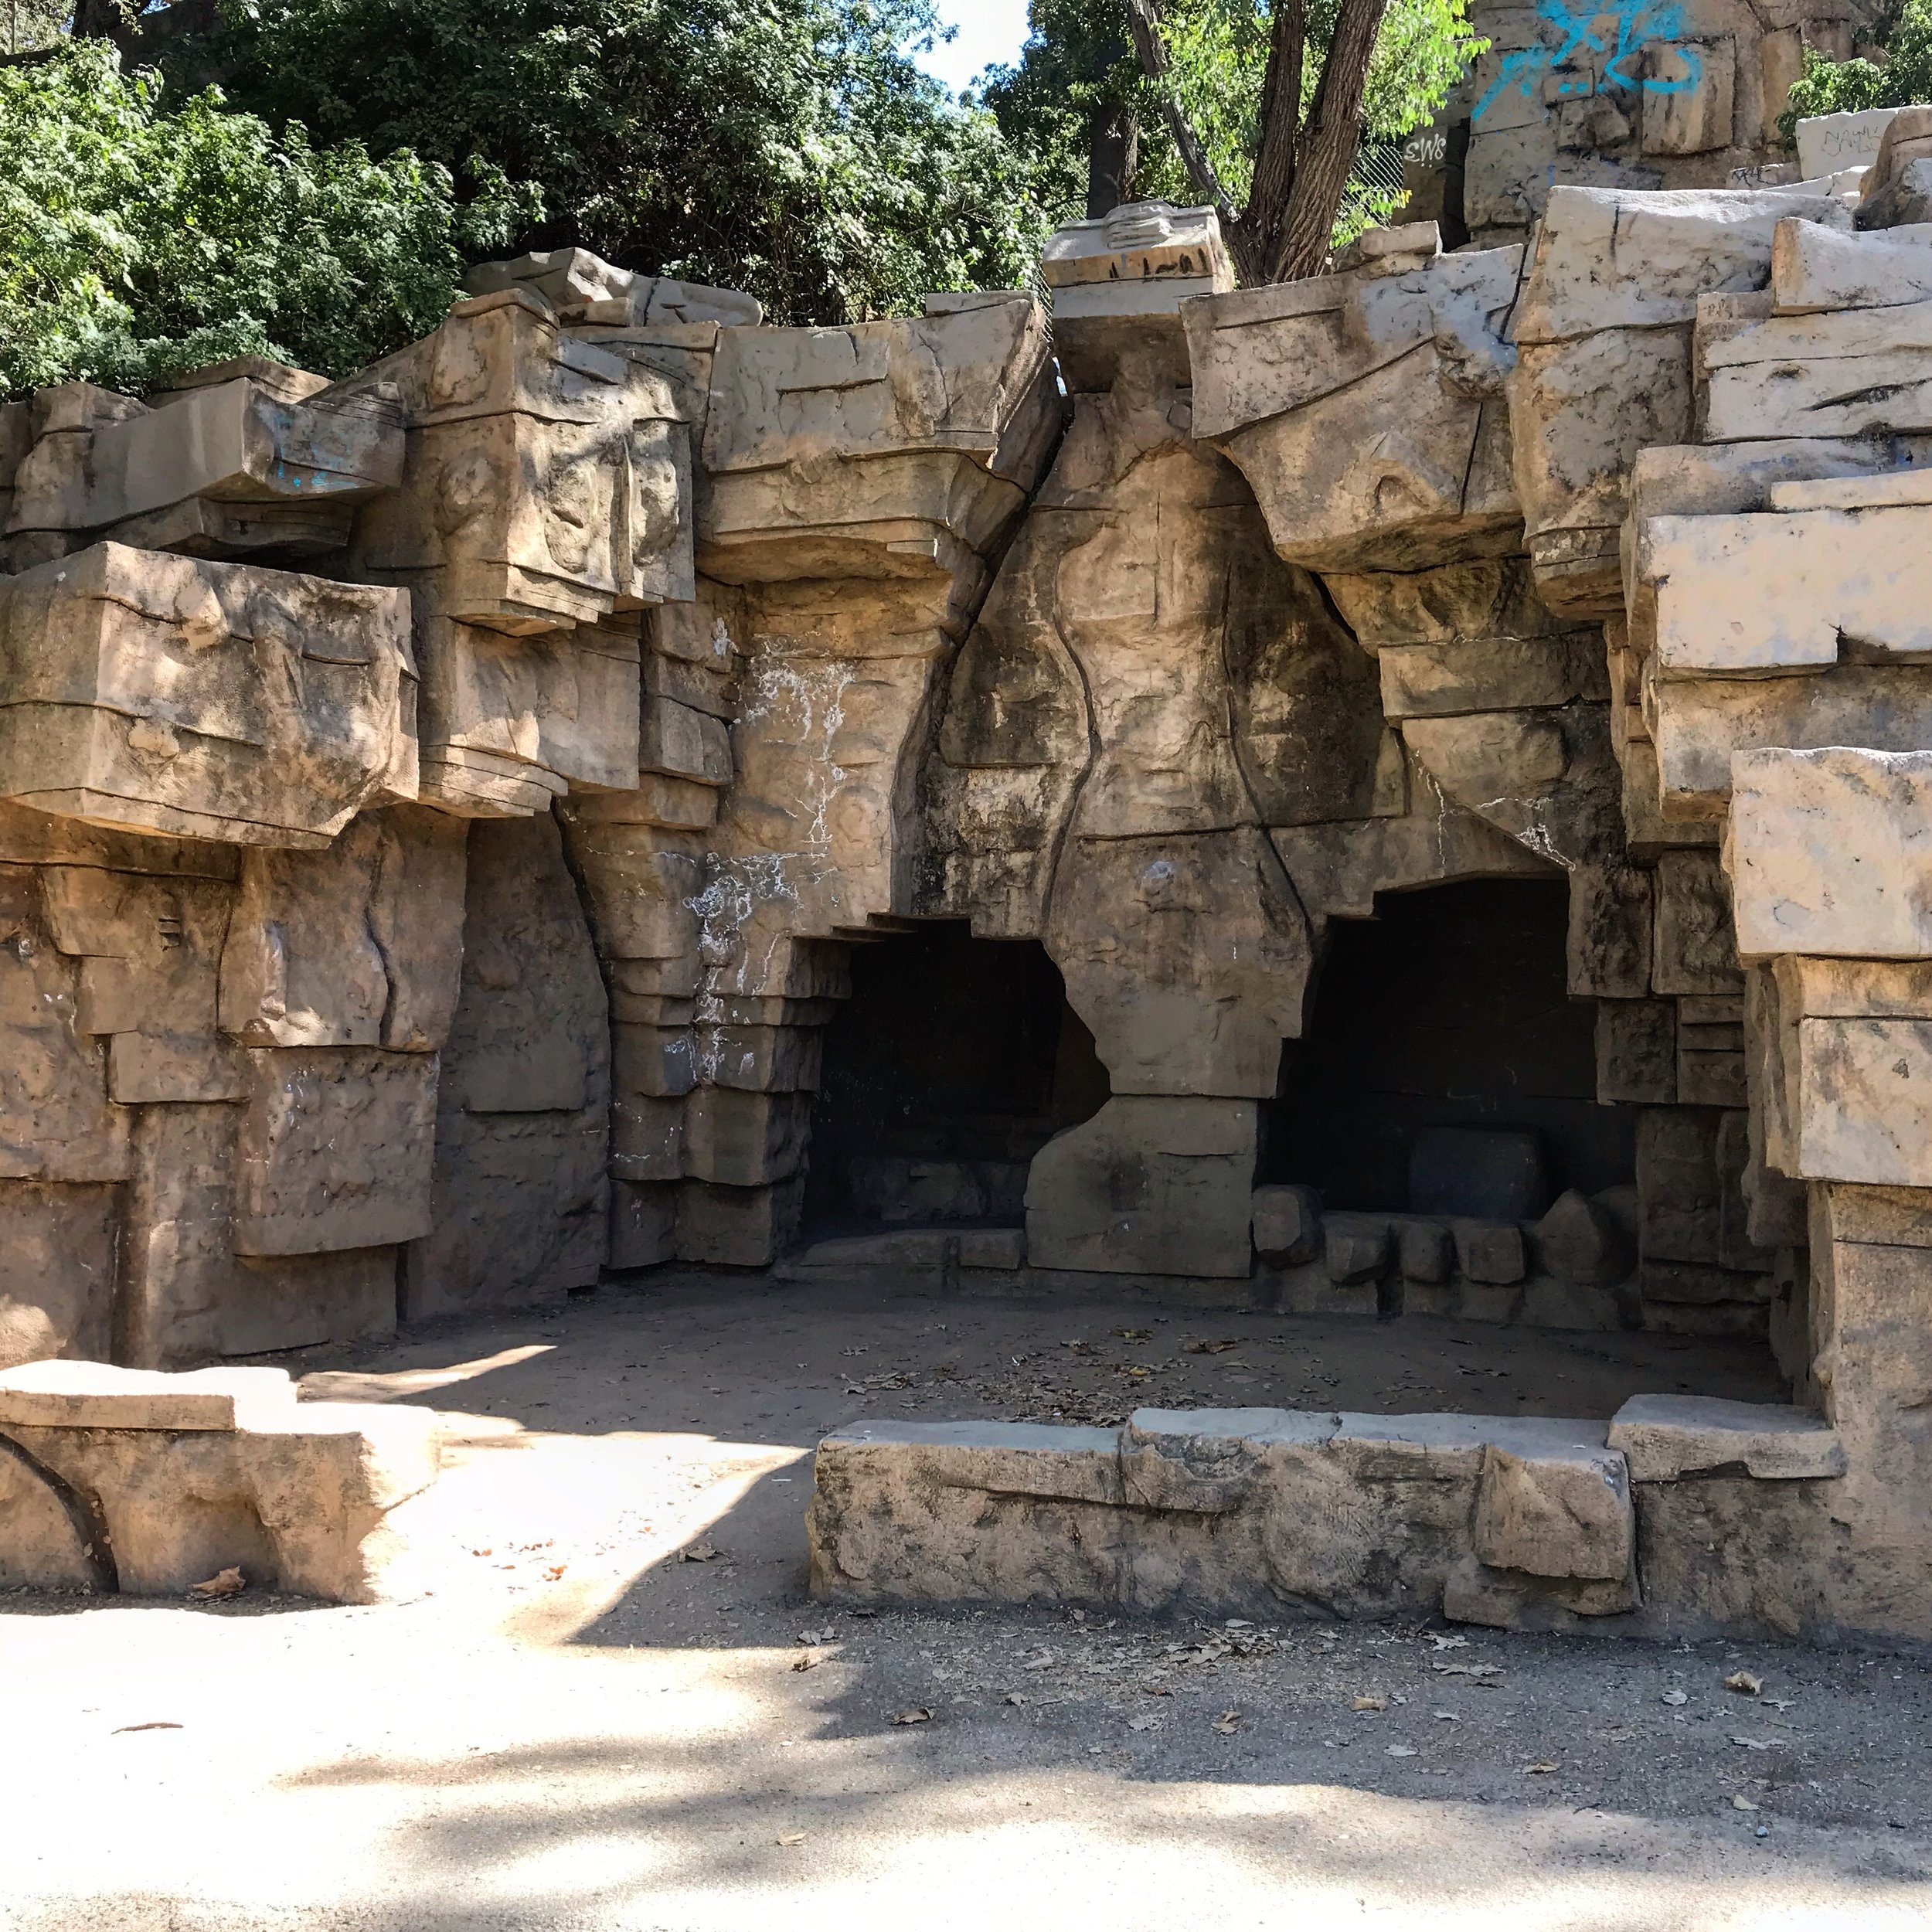 The Old Los Angeles Zoo, Griffith Park (image provided by the author).